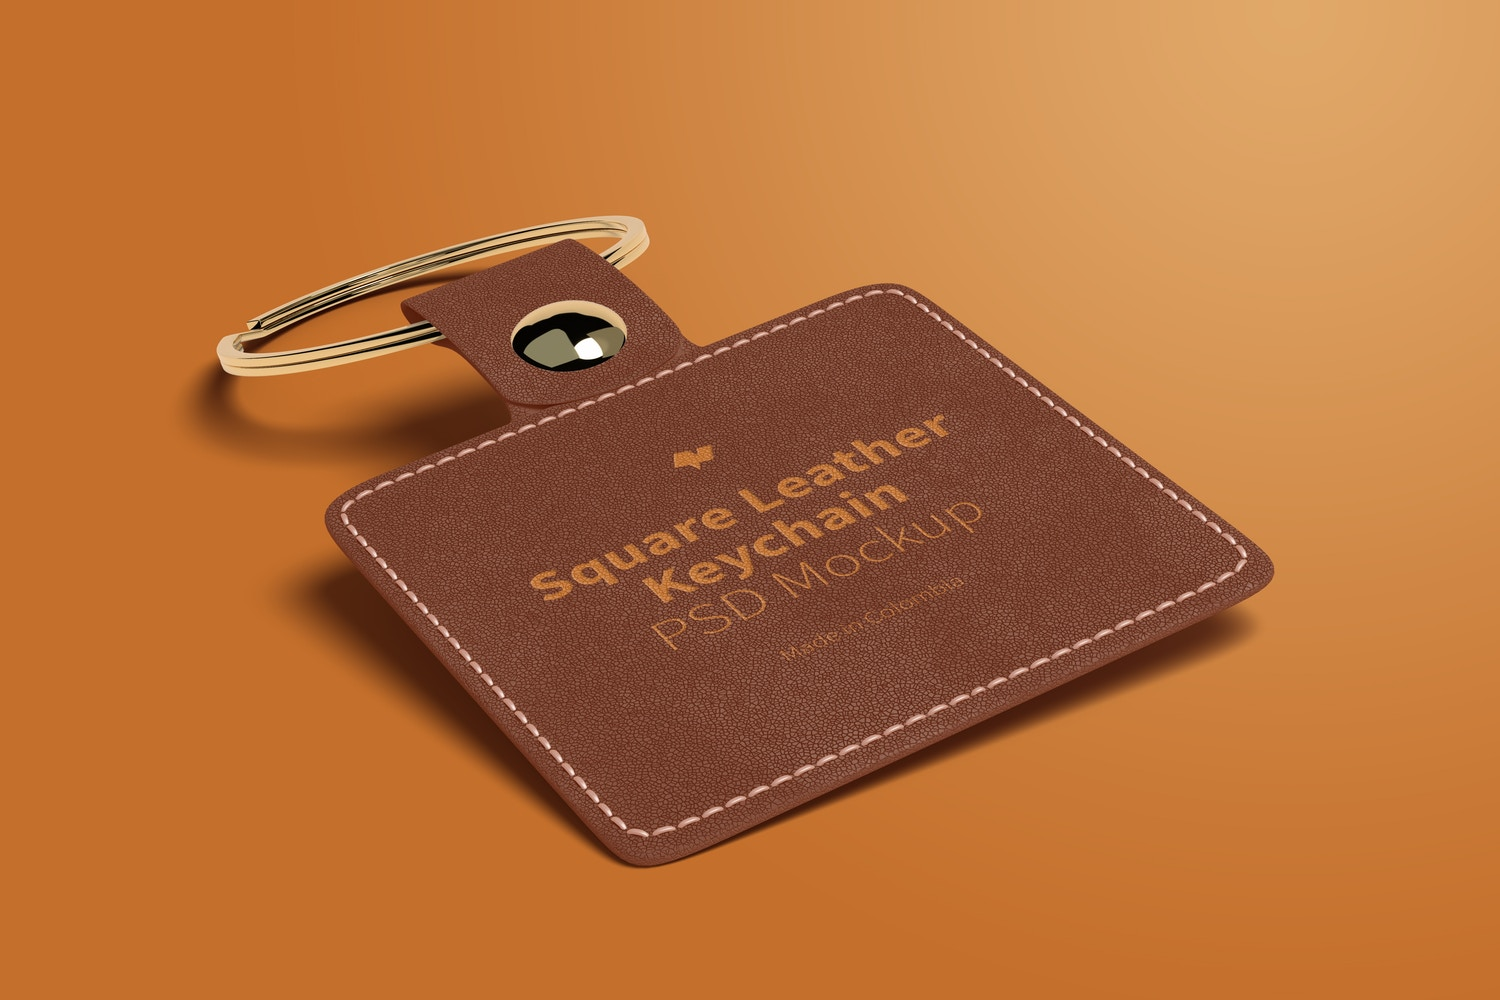 Square Leather Keychain Mockup, Left View